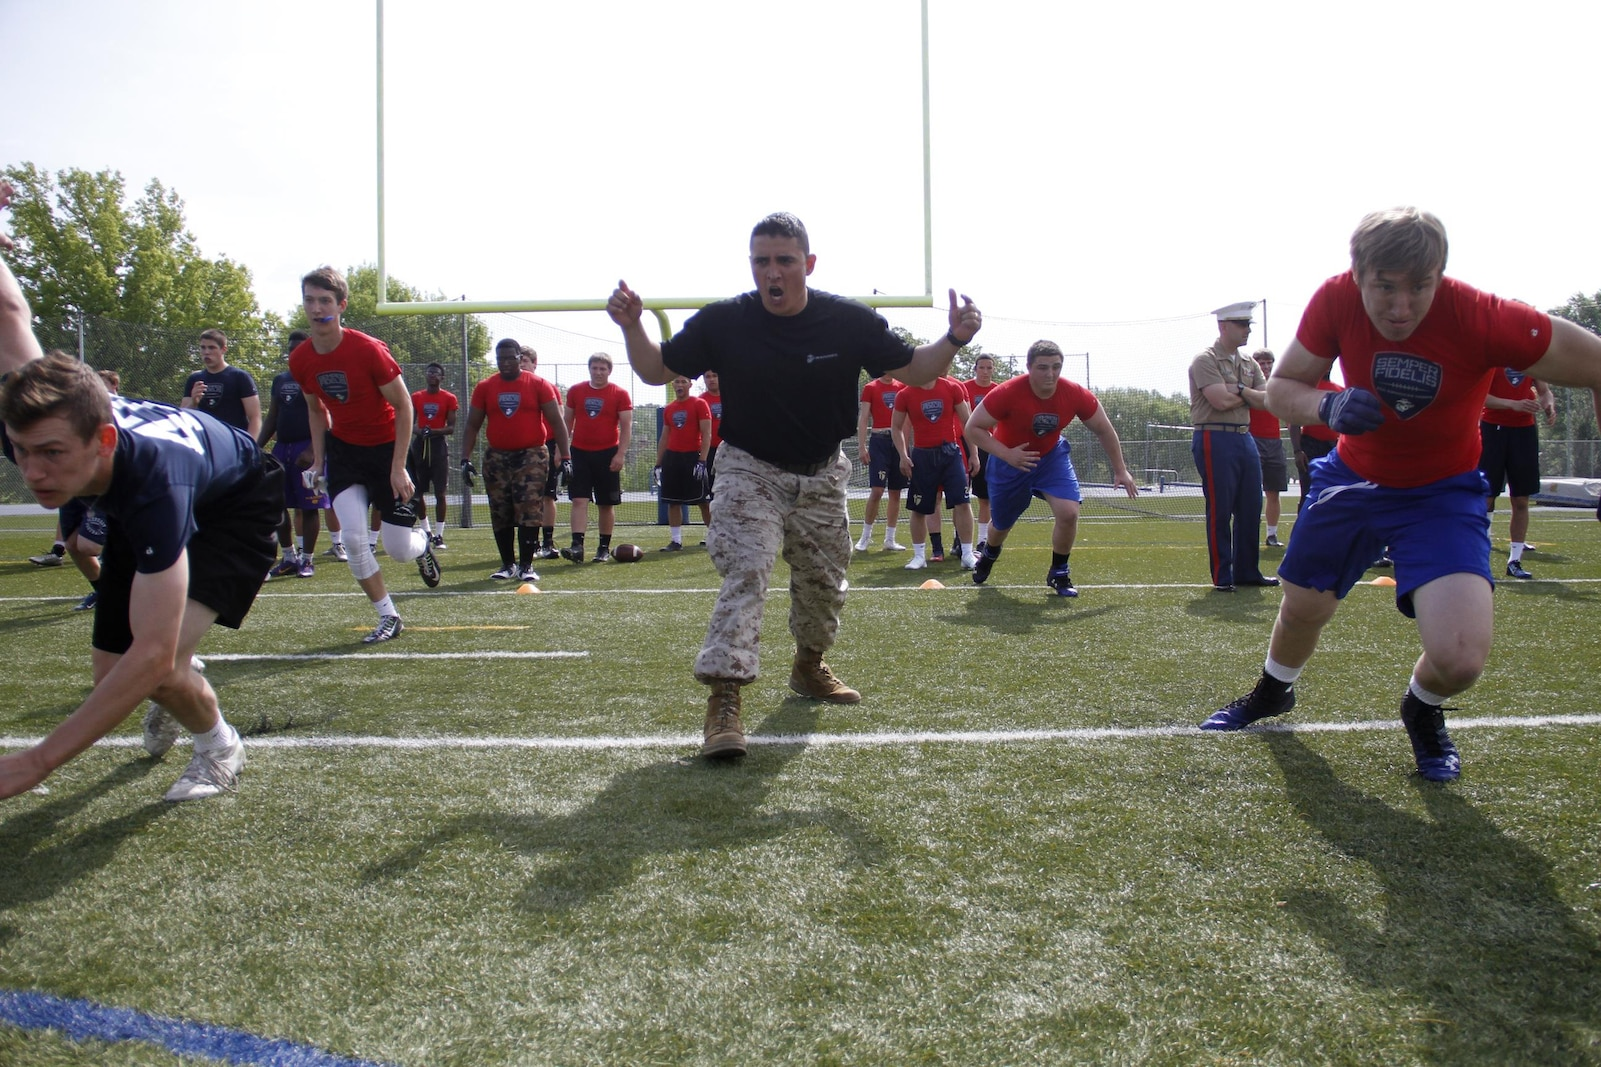 Sergeant Jose Marrufo, a Marine Corps Recruiting Station Kansas City recruiter, motivates football players to push through a sprint drill during the Semper Fidelis All-American Football Camp at Rockhurst High School's Vincent P. Dasta Memorial Stadium May 3, 2015. Approximately 195 players from across Missouri, Kansas, Arkansas, Nebraska, Illinois and Missippi took part in the all-day camp. NFL coaches were on hand to provide critical football skills and guidance to the camp attendees.